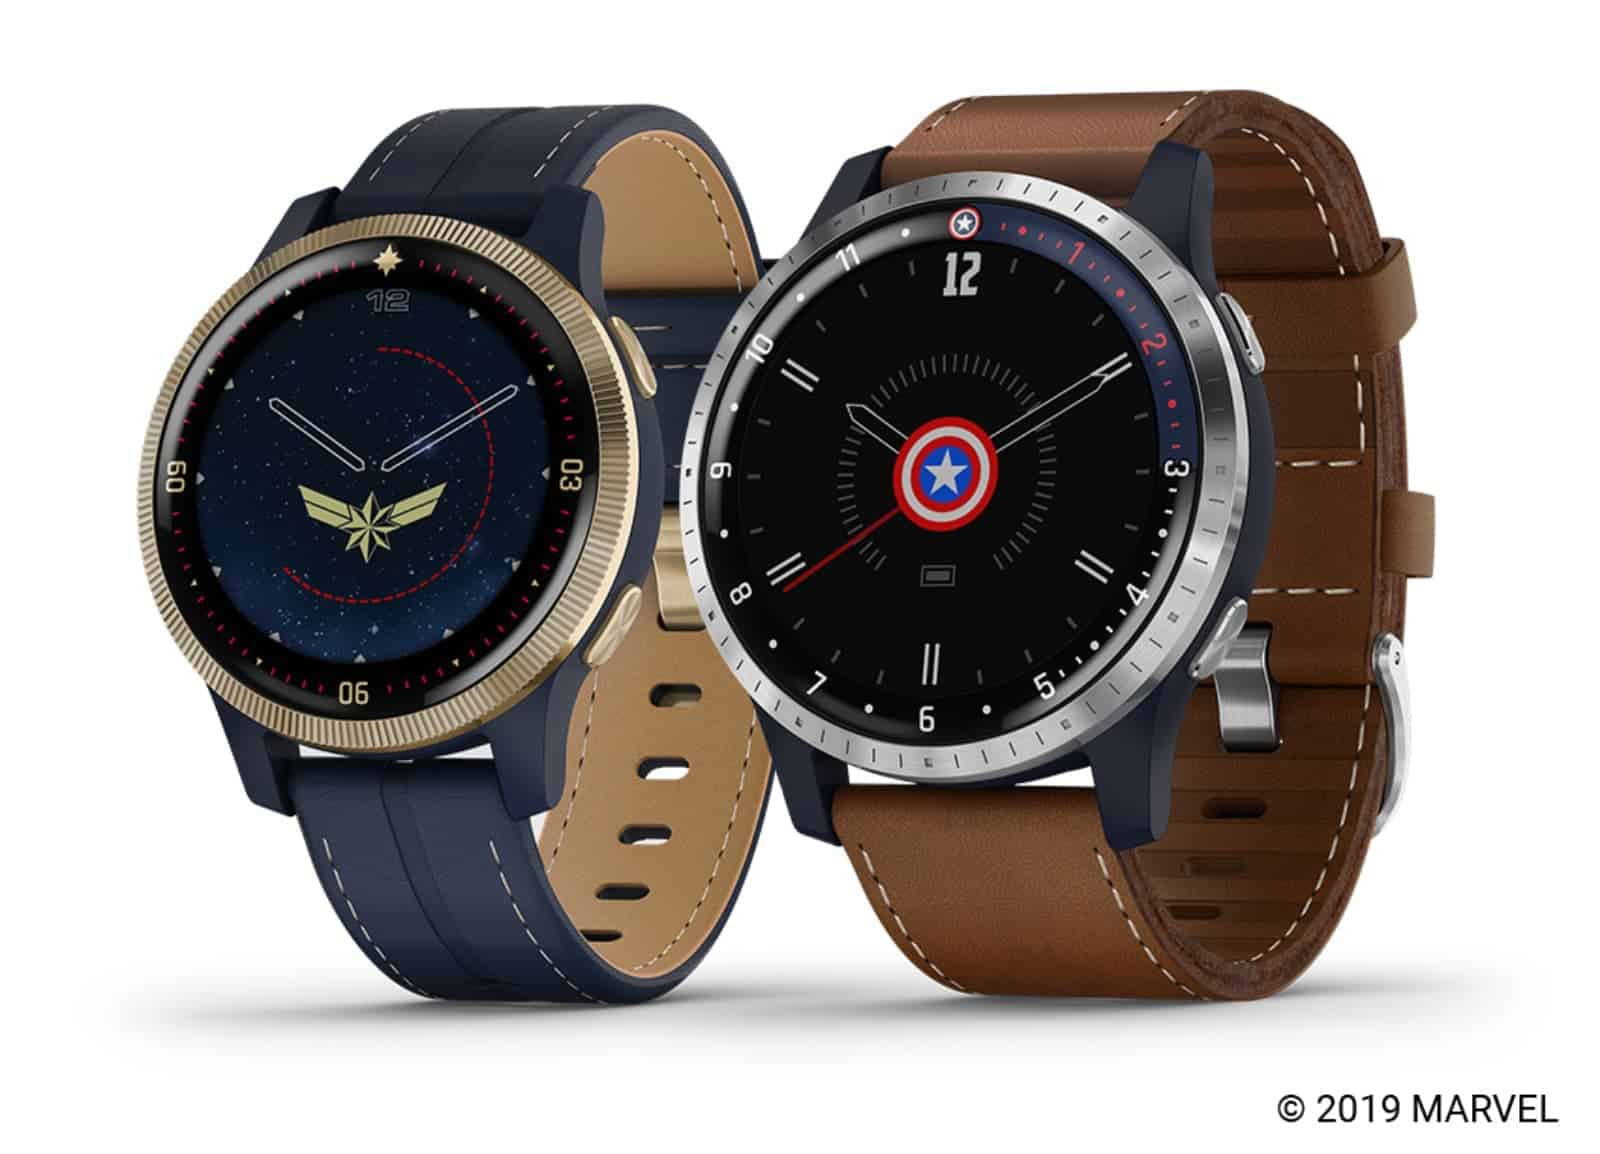 Legacy Hero Series Smartwatches